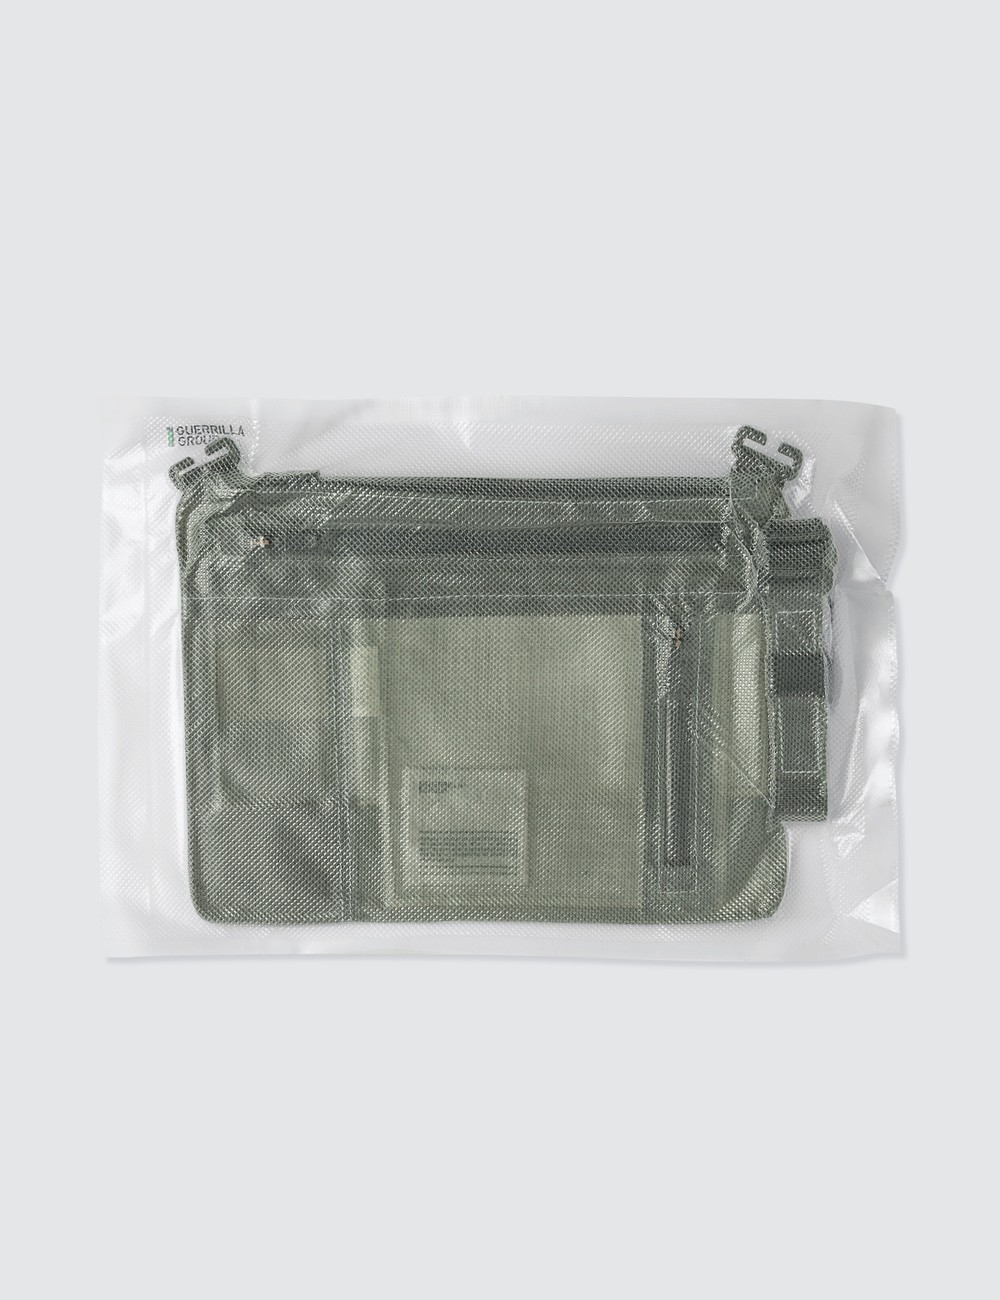 Translucent Leather Bag